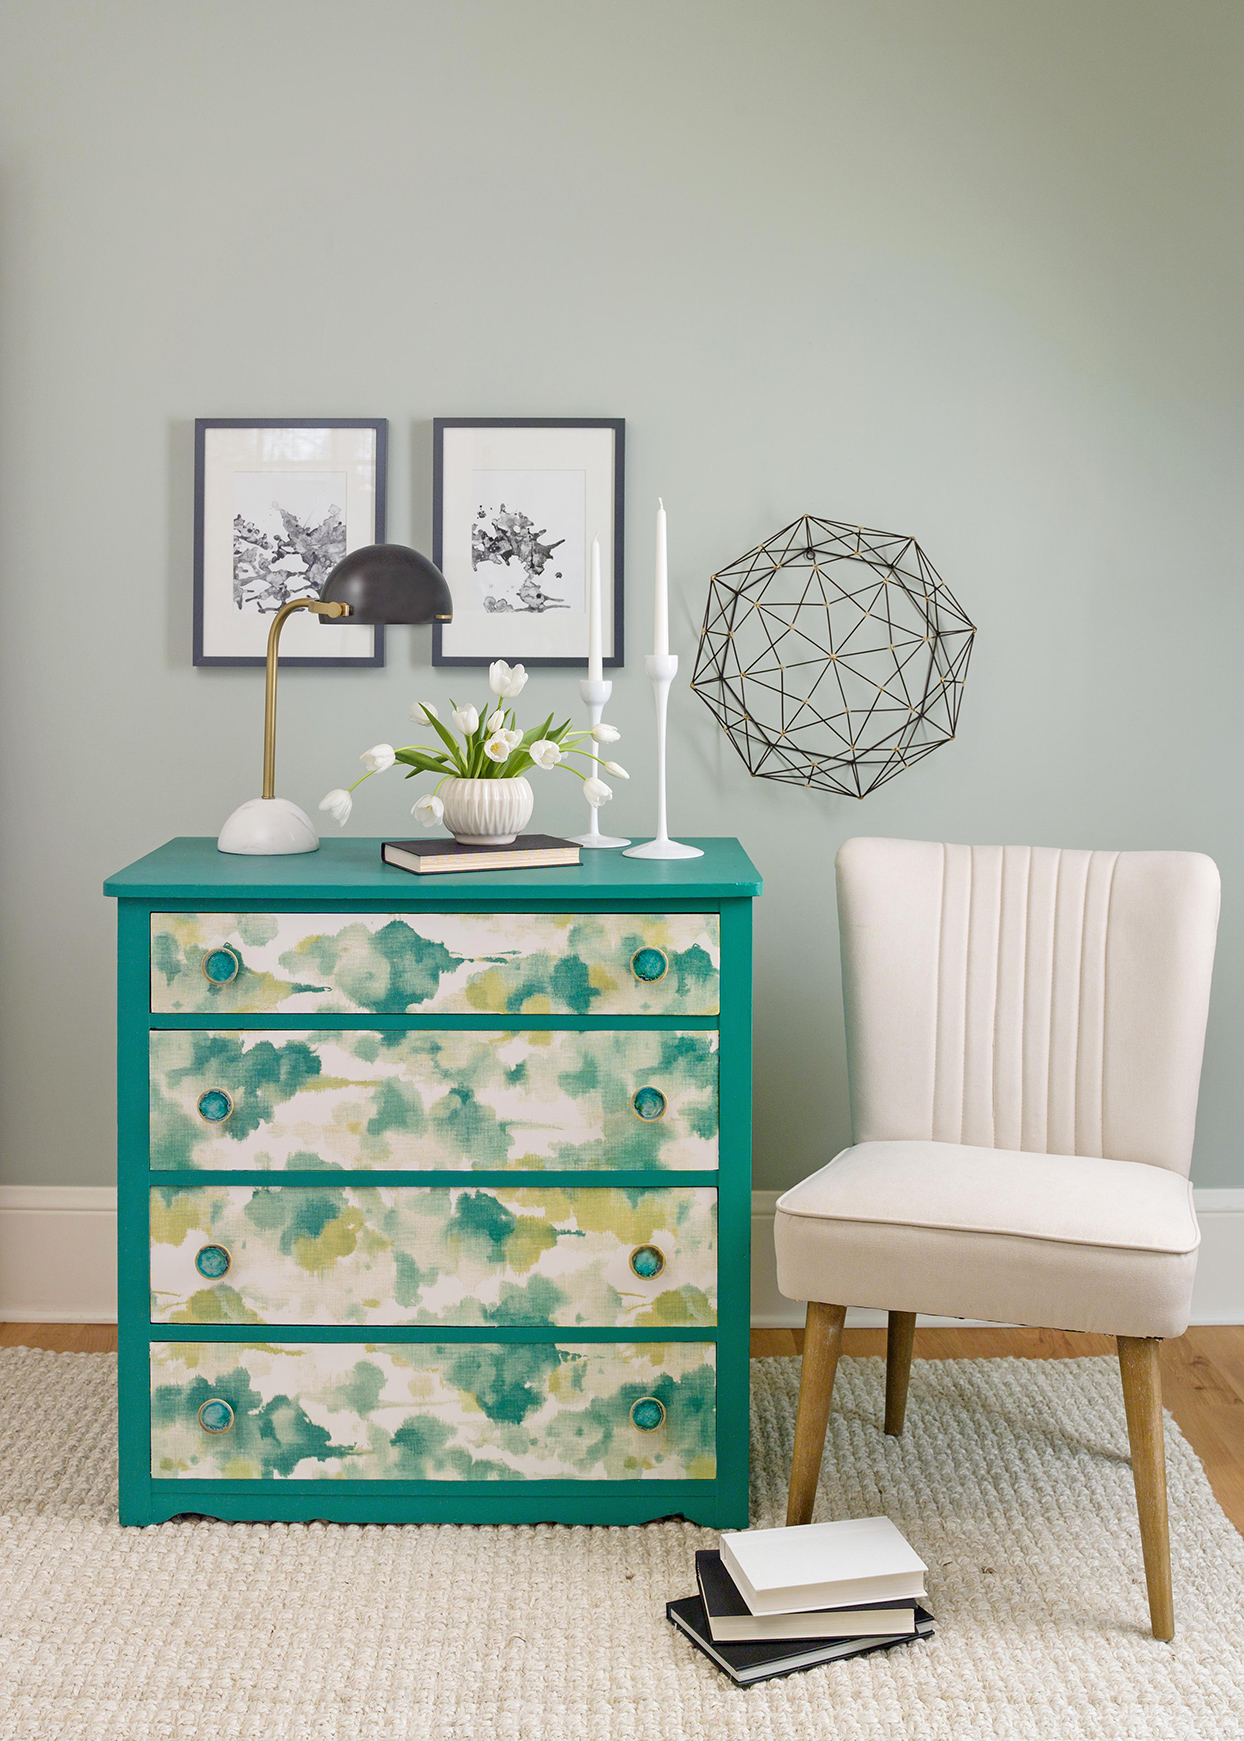 teal, yellow, and white papered dresser in gray room